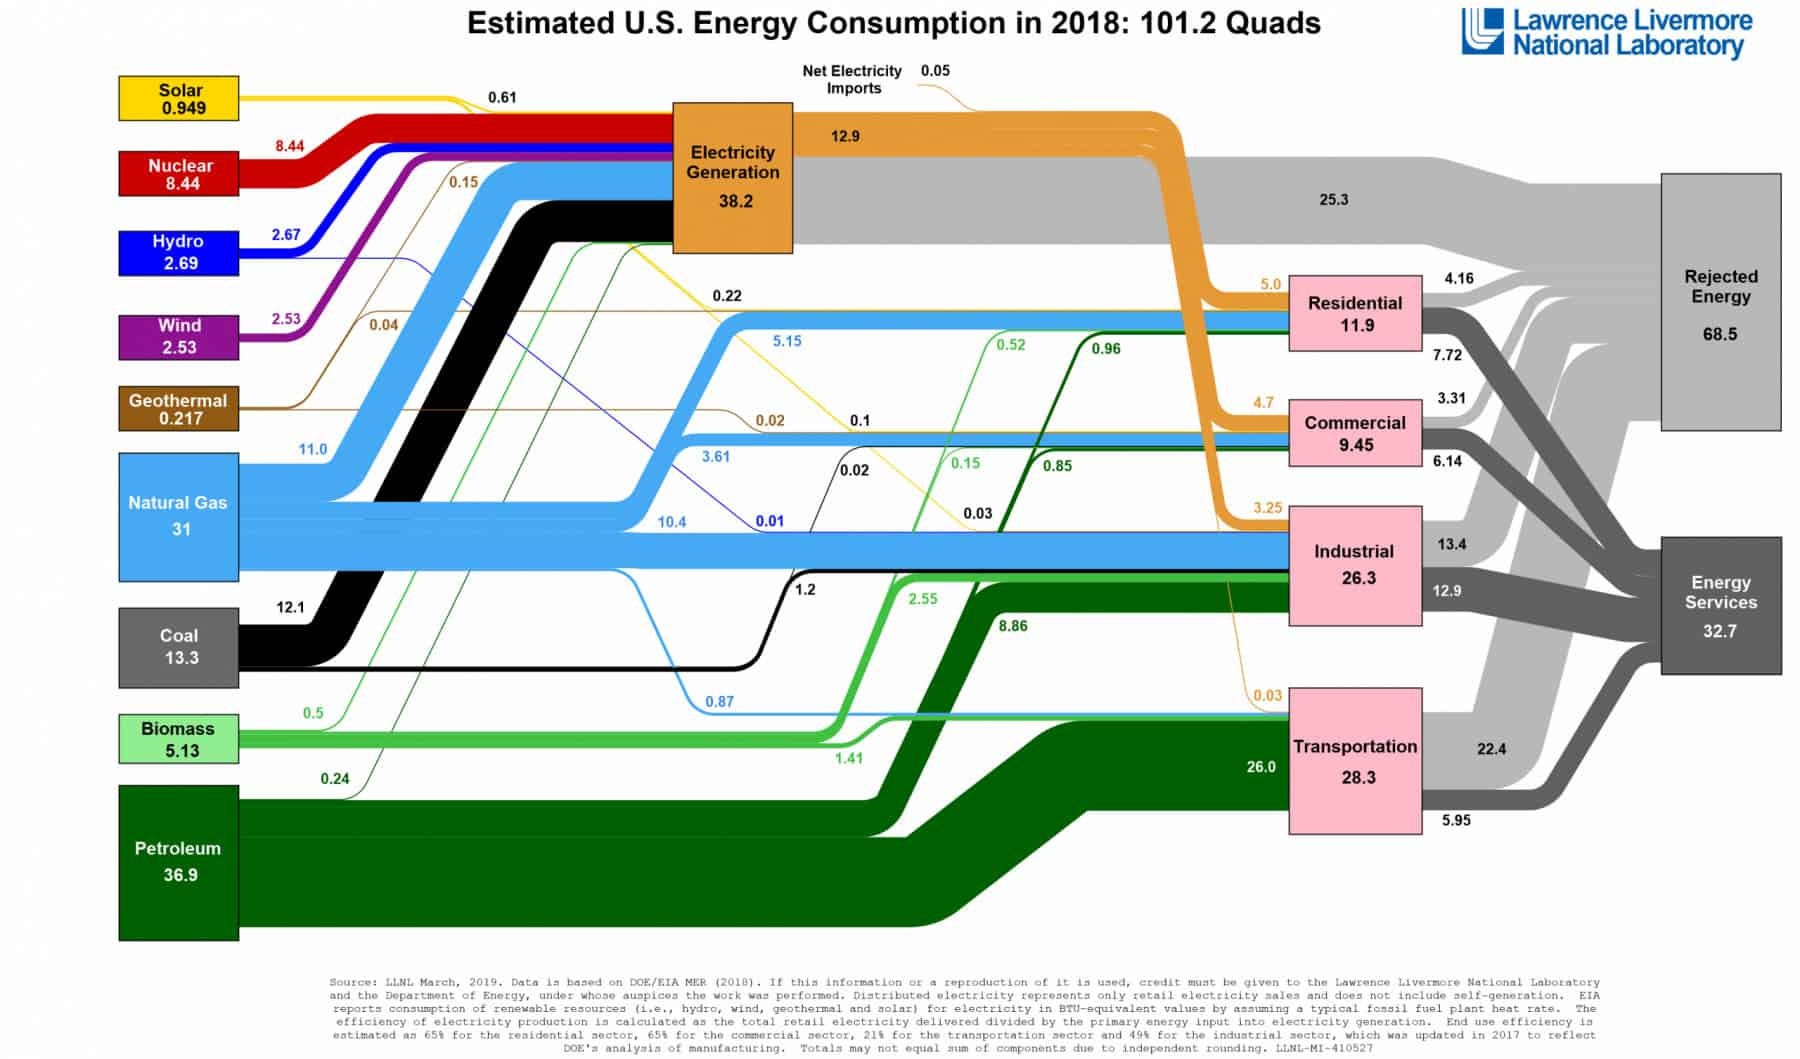 Modeling Low Carbon Energy Futures for the United States